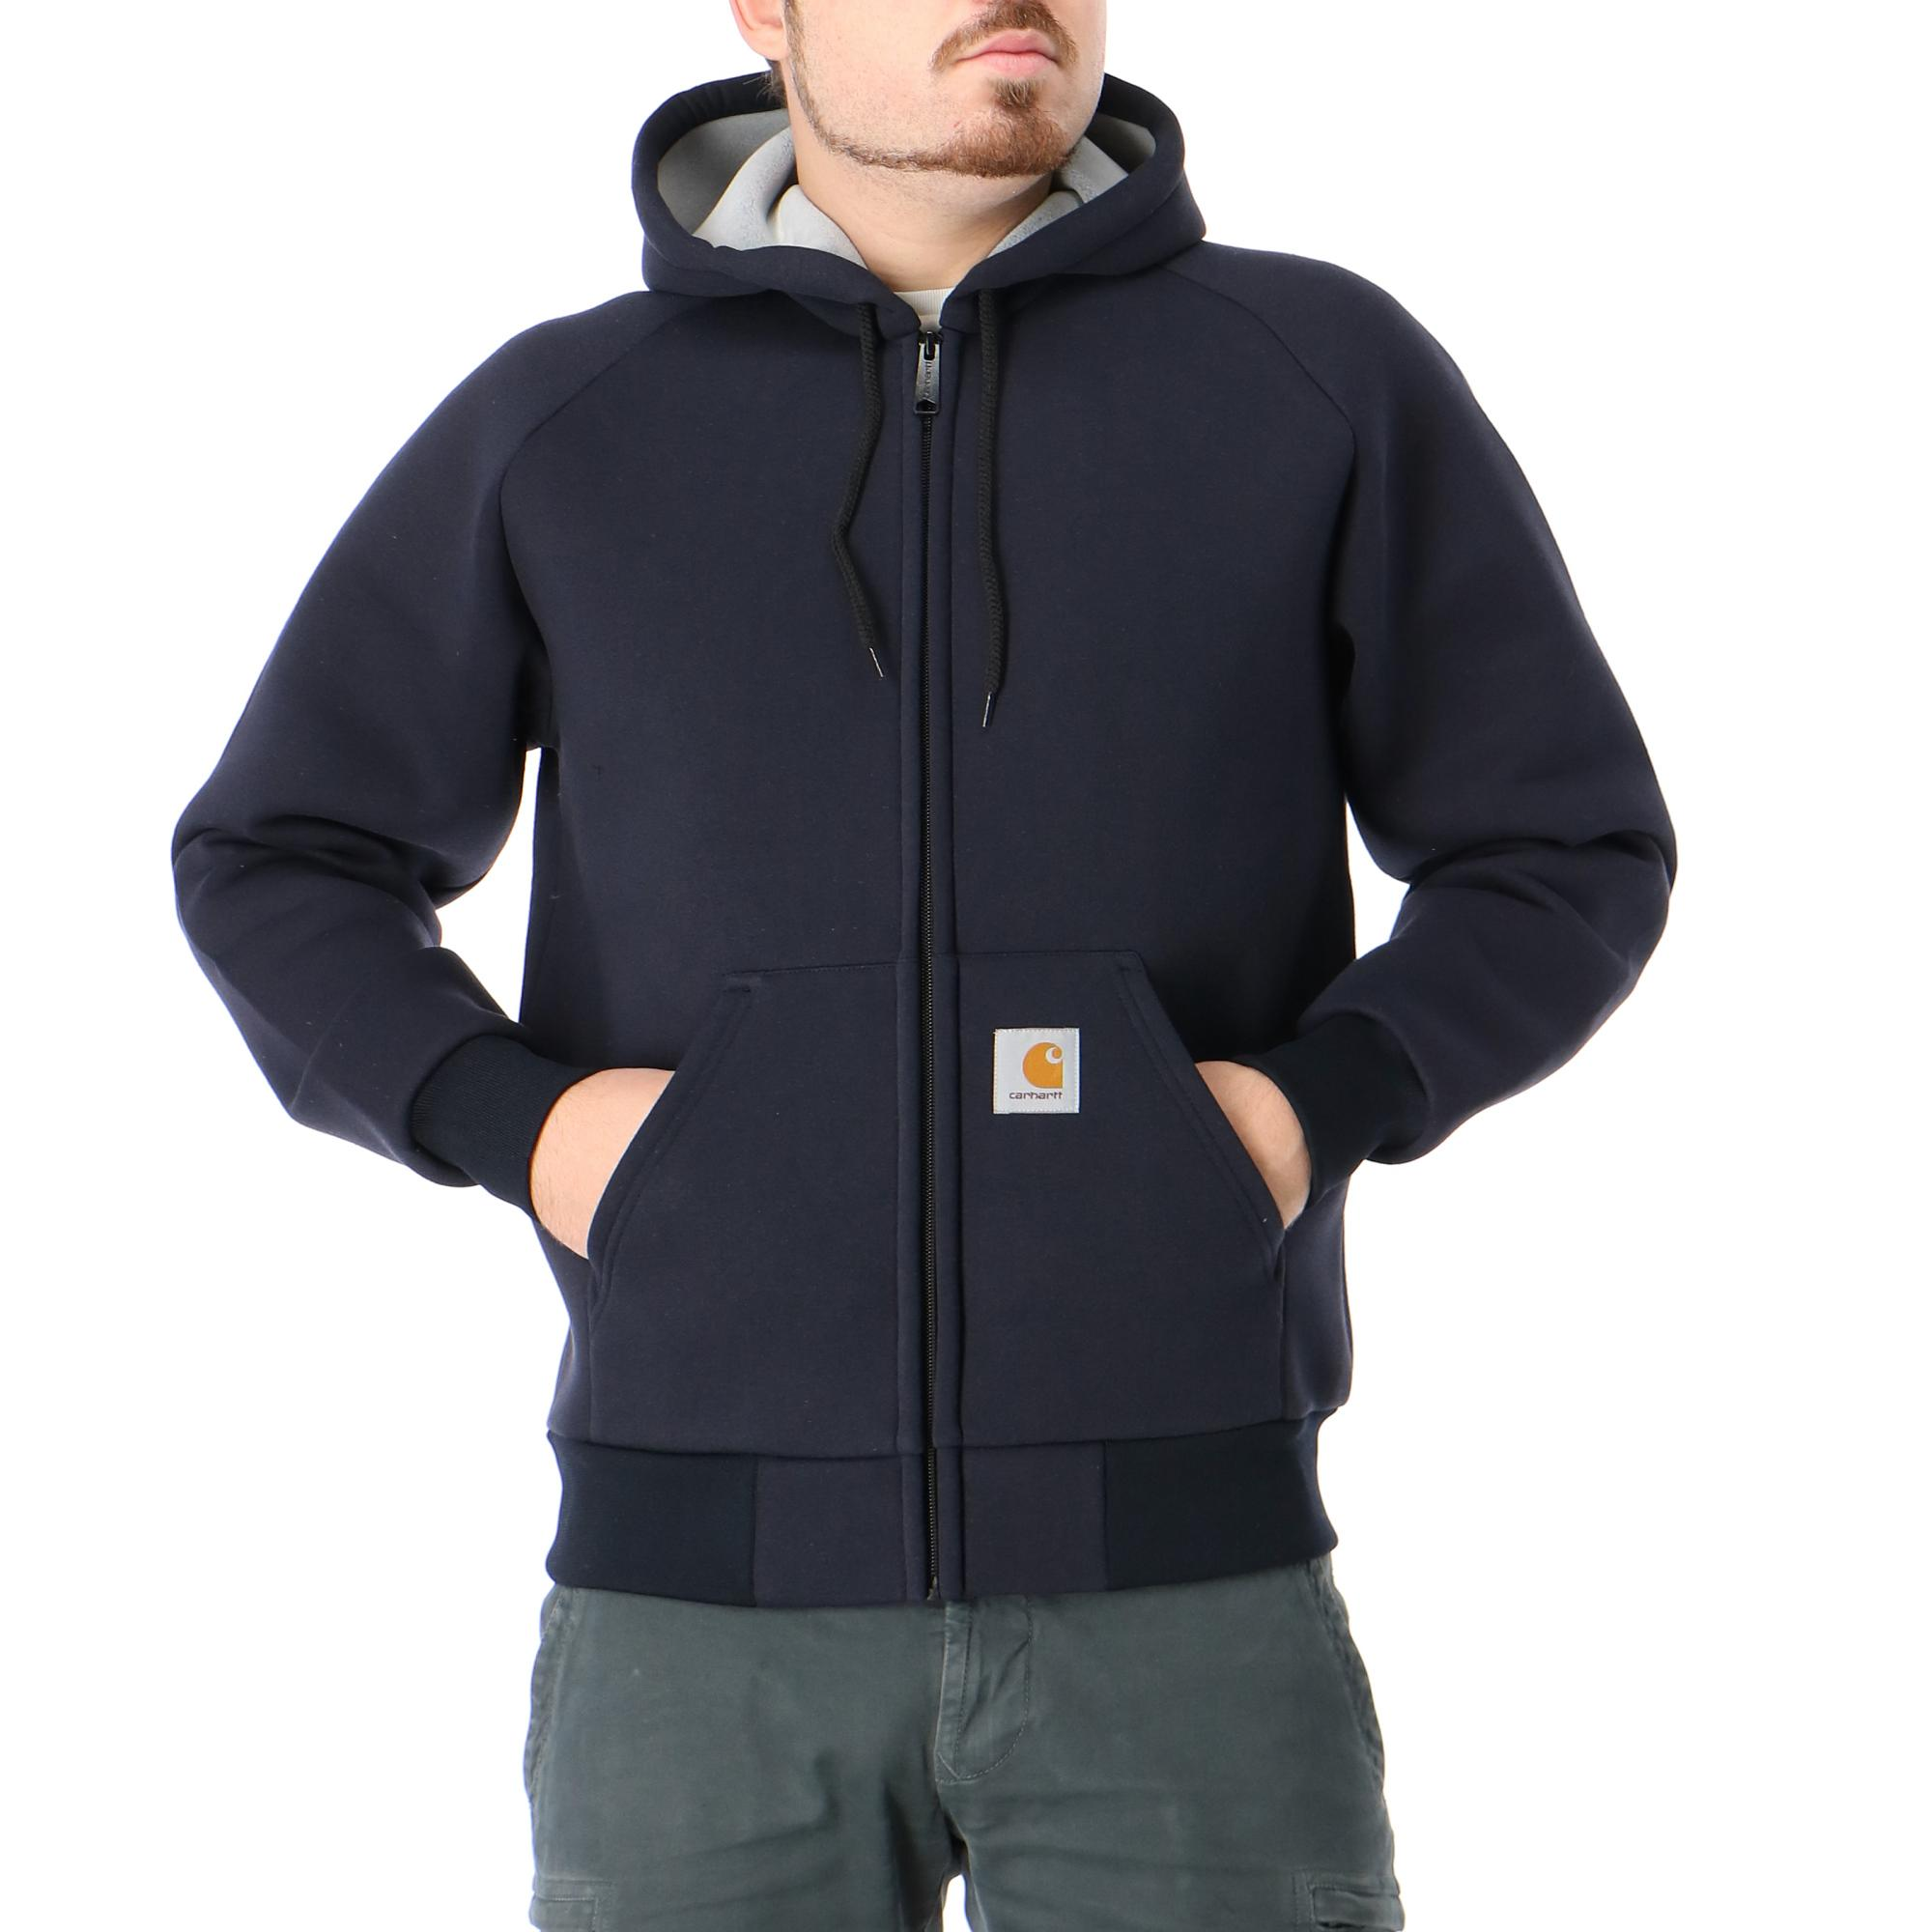 Carhartt Car-lux Hooded Jacket Dark navy grey